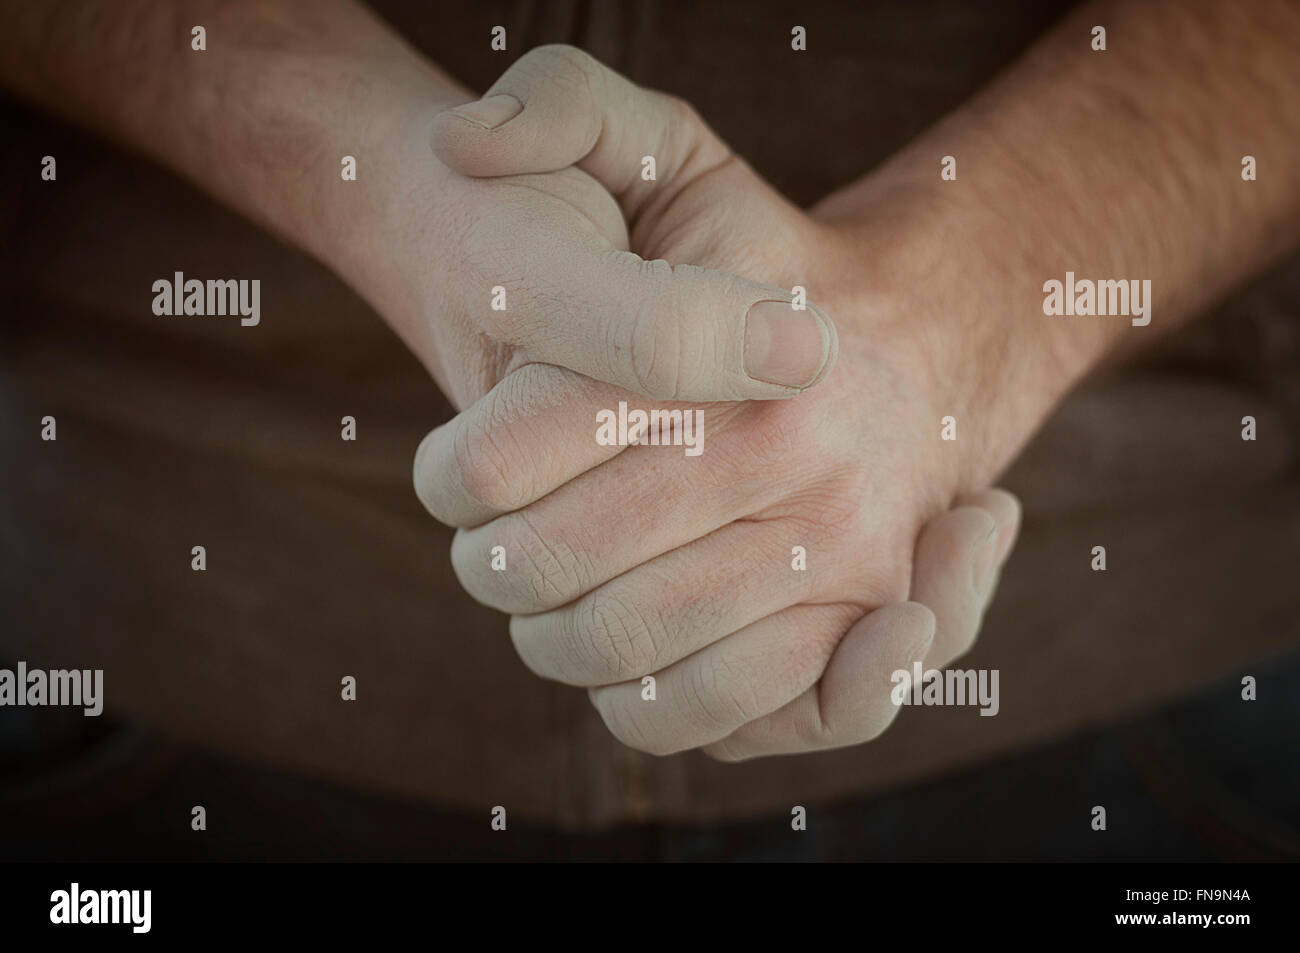 Close up of man's hands clasped - Stock Image